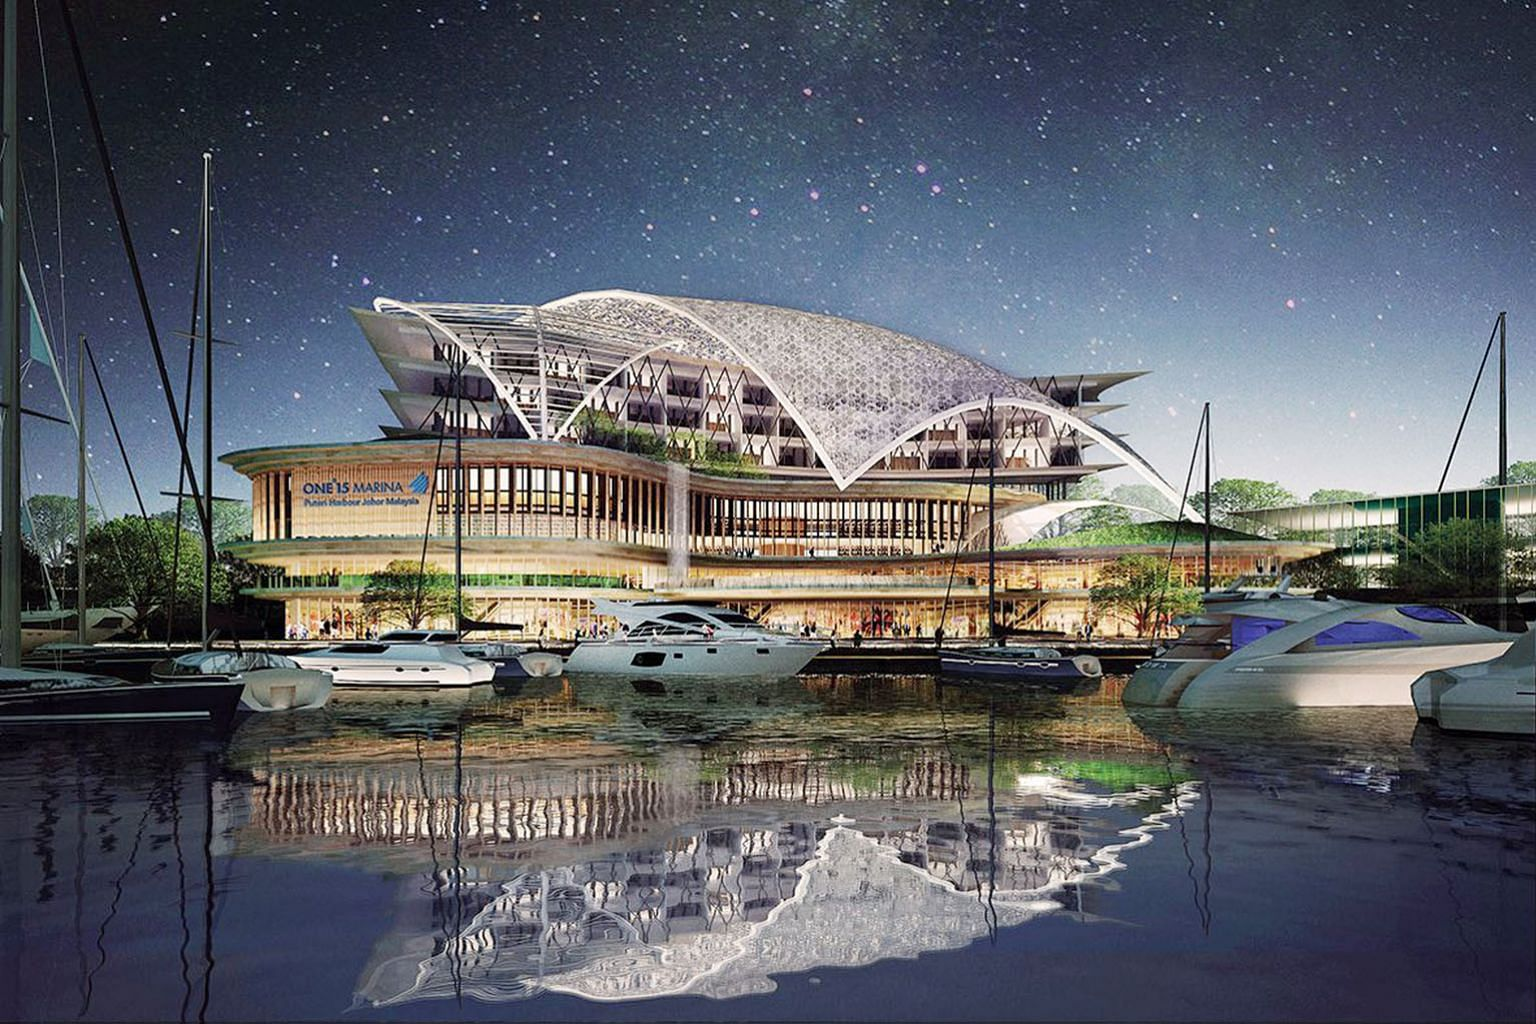 An artist's impression of the ONE°15 Marina Puteri Harbour Malaysia in Johor. The development is targeted at Malaysians, as well as expatriates living in Johor or those who own property there.